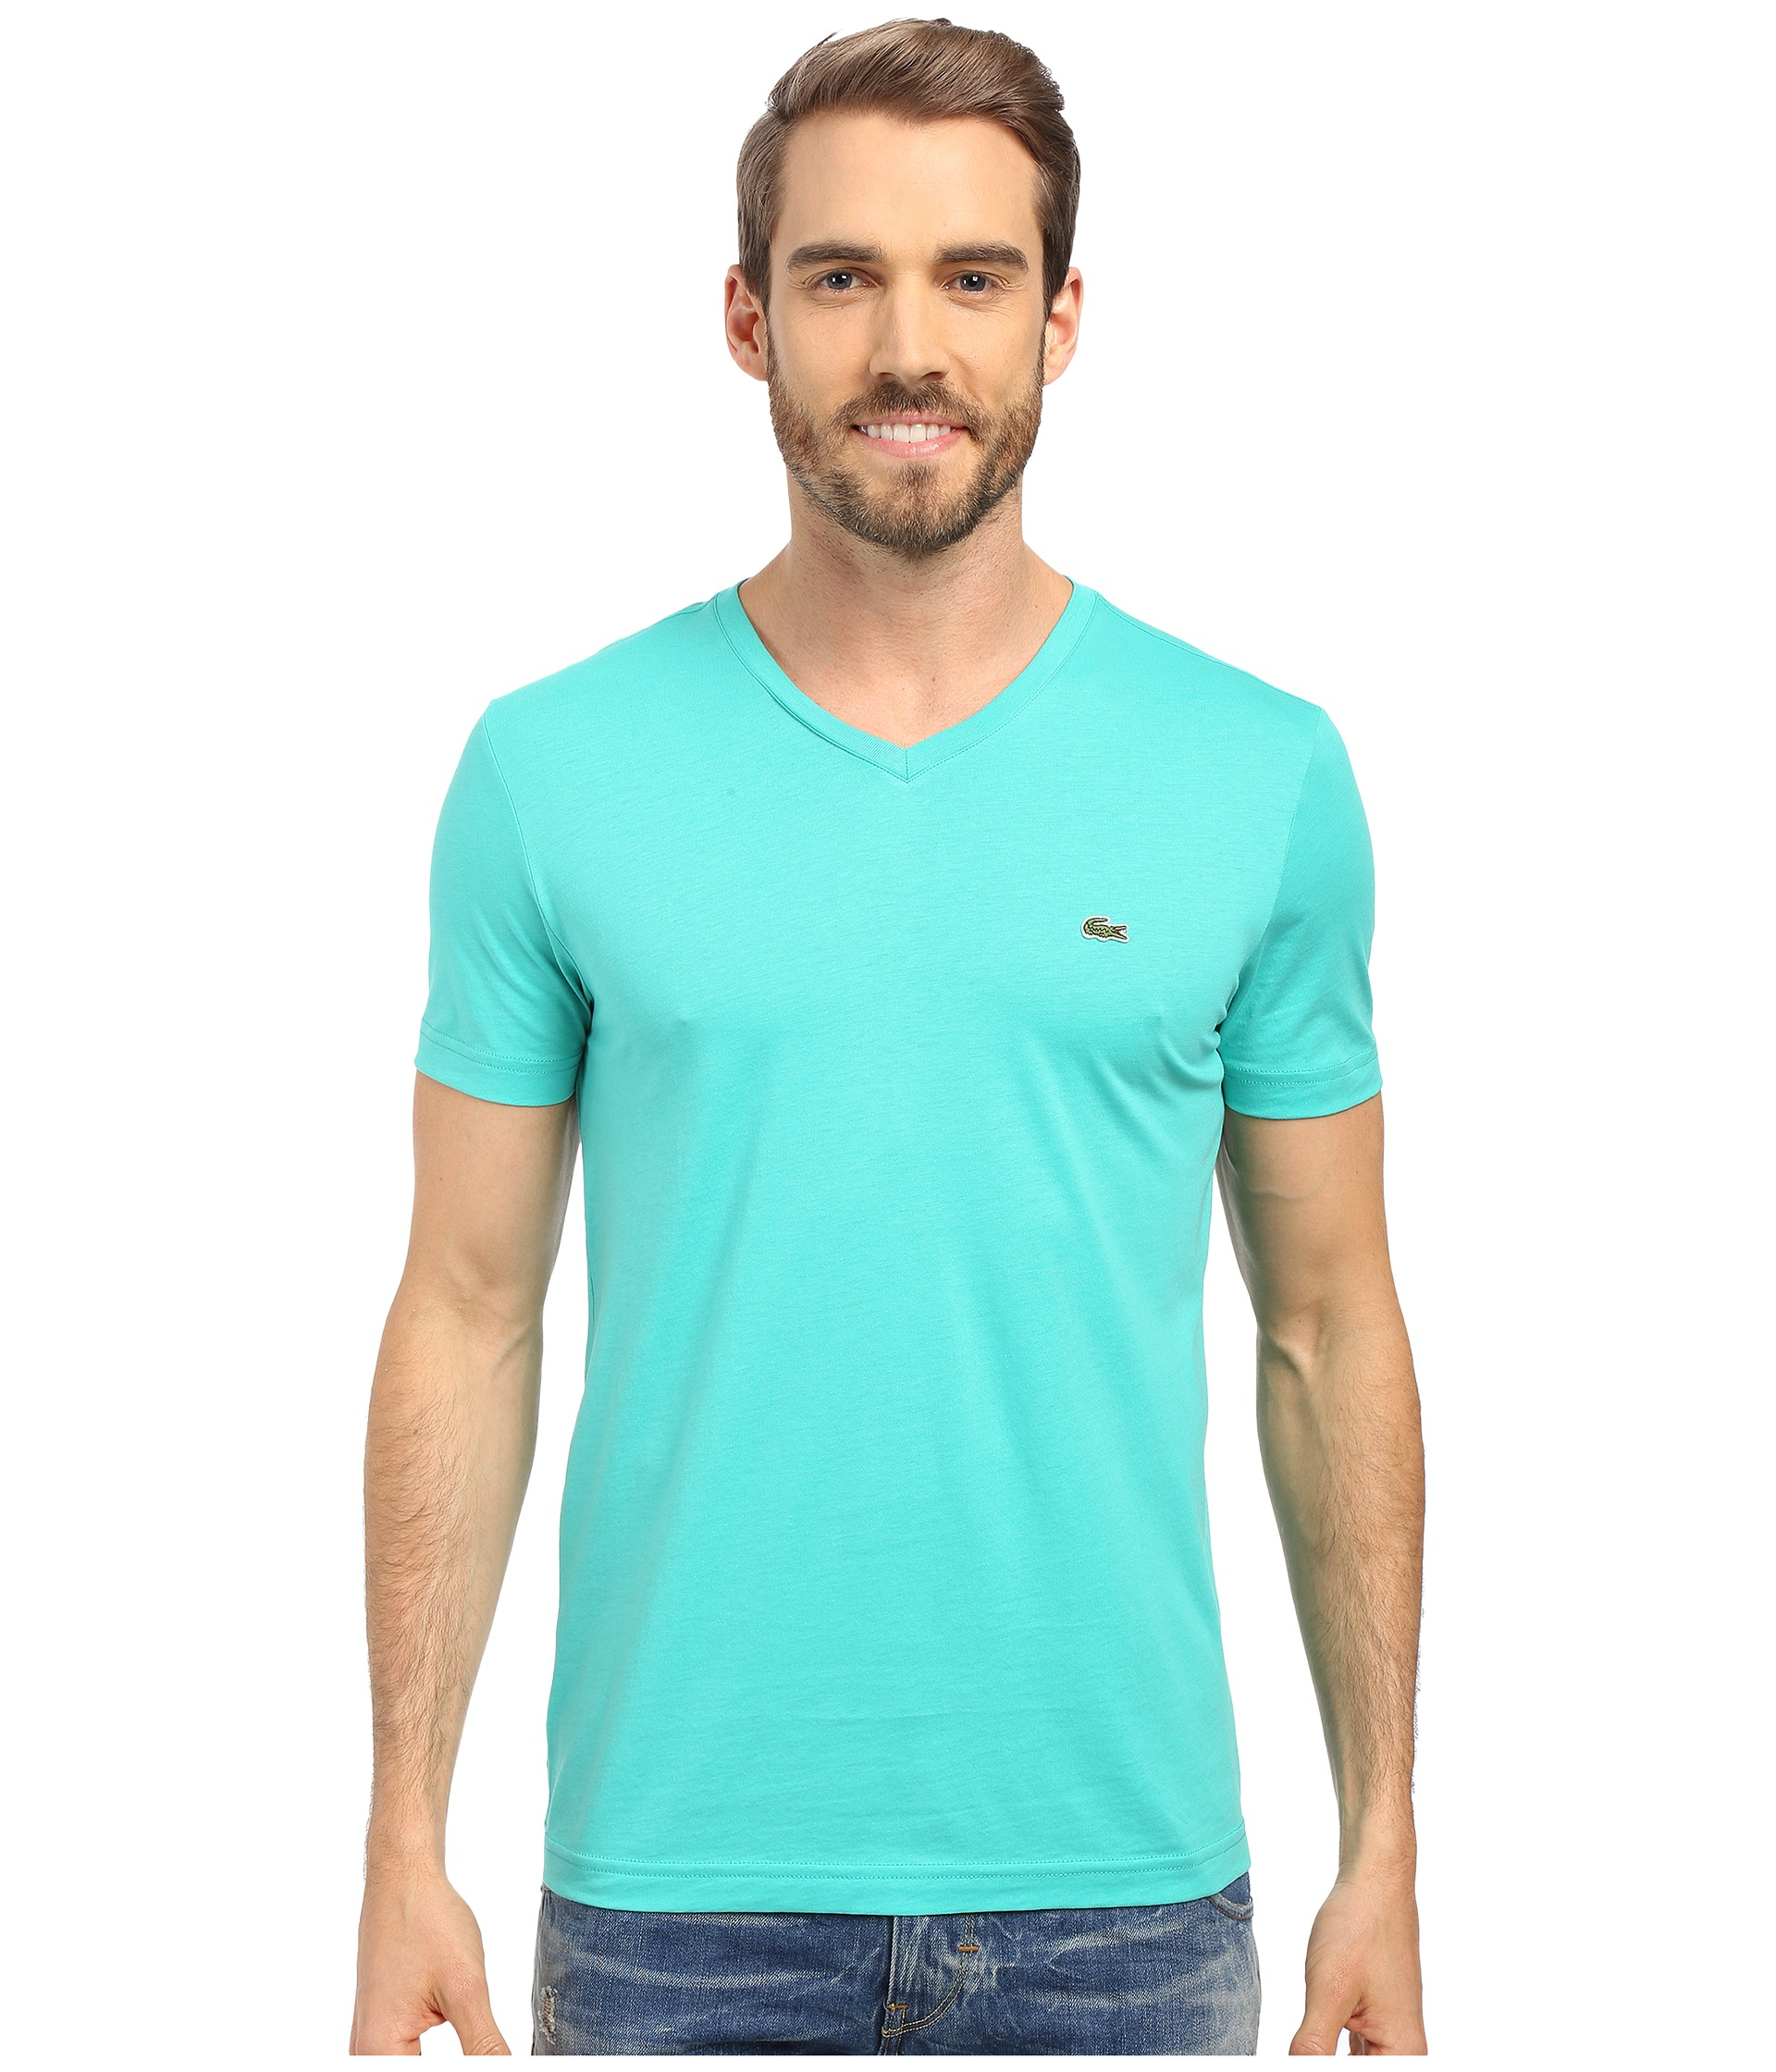 V Neck T Shirt Lyst - Lacoste S/s Pima Jersey V-neck T-shirt In Green For Men